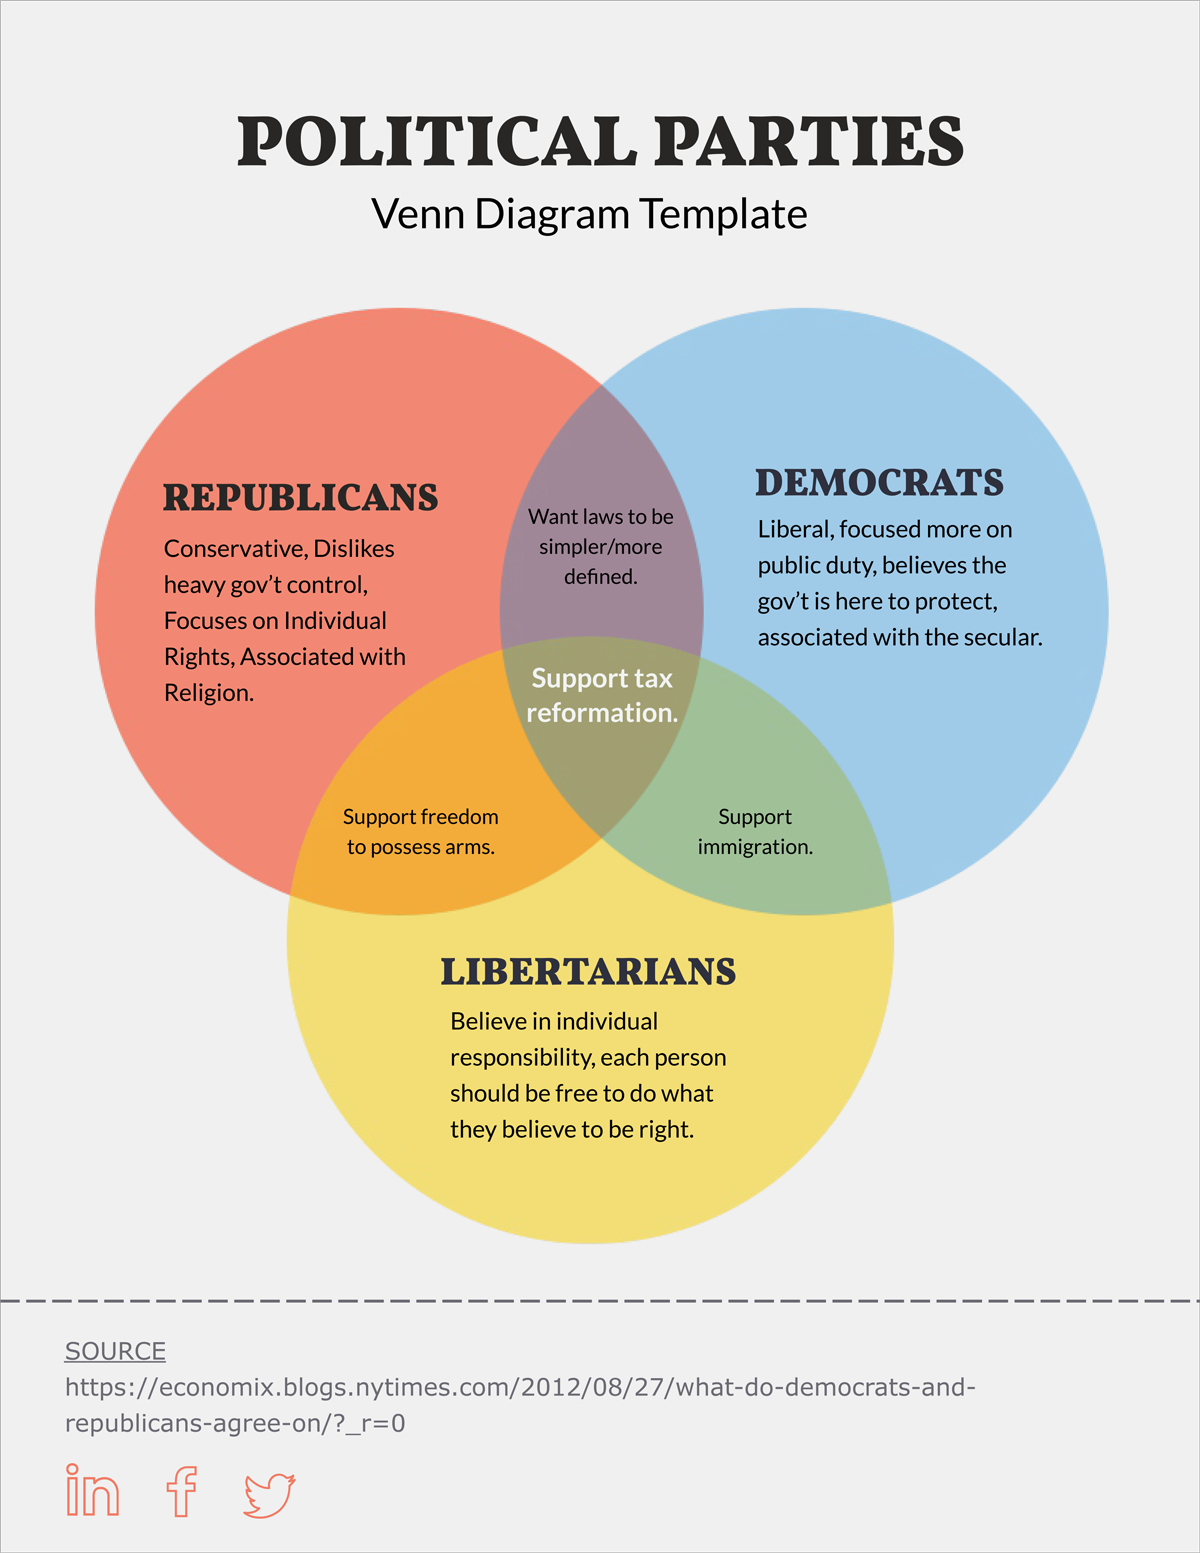 Free venn diagram template edit online and download visual political parties three circle venn diagram template pooptronica Gallery